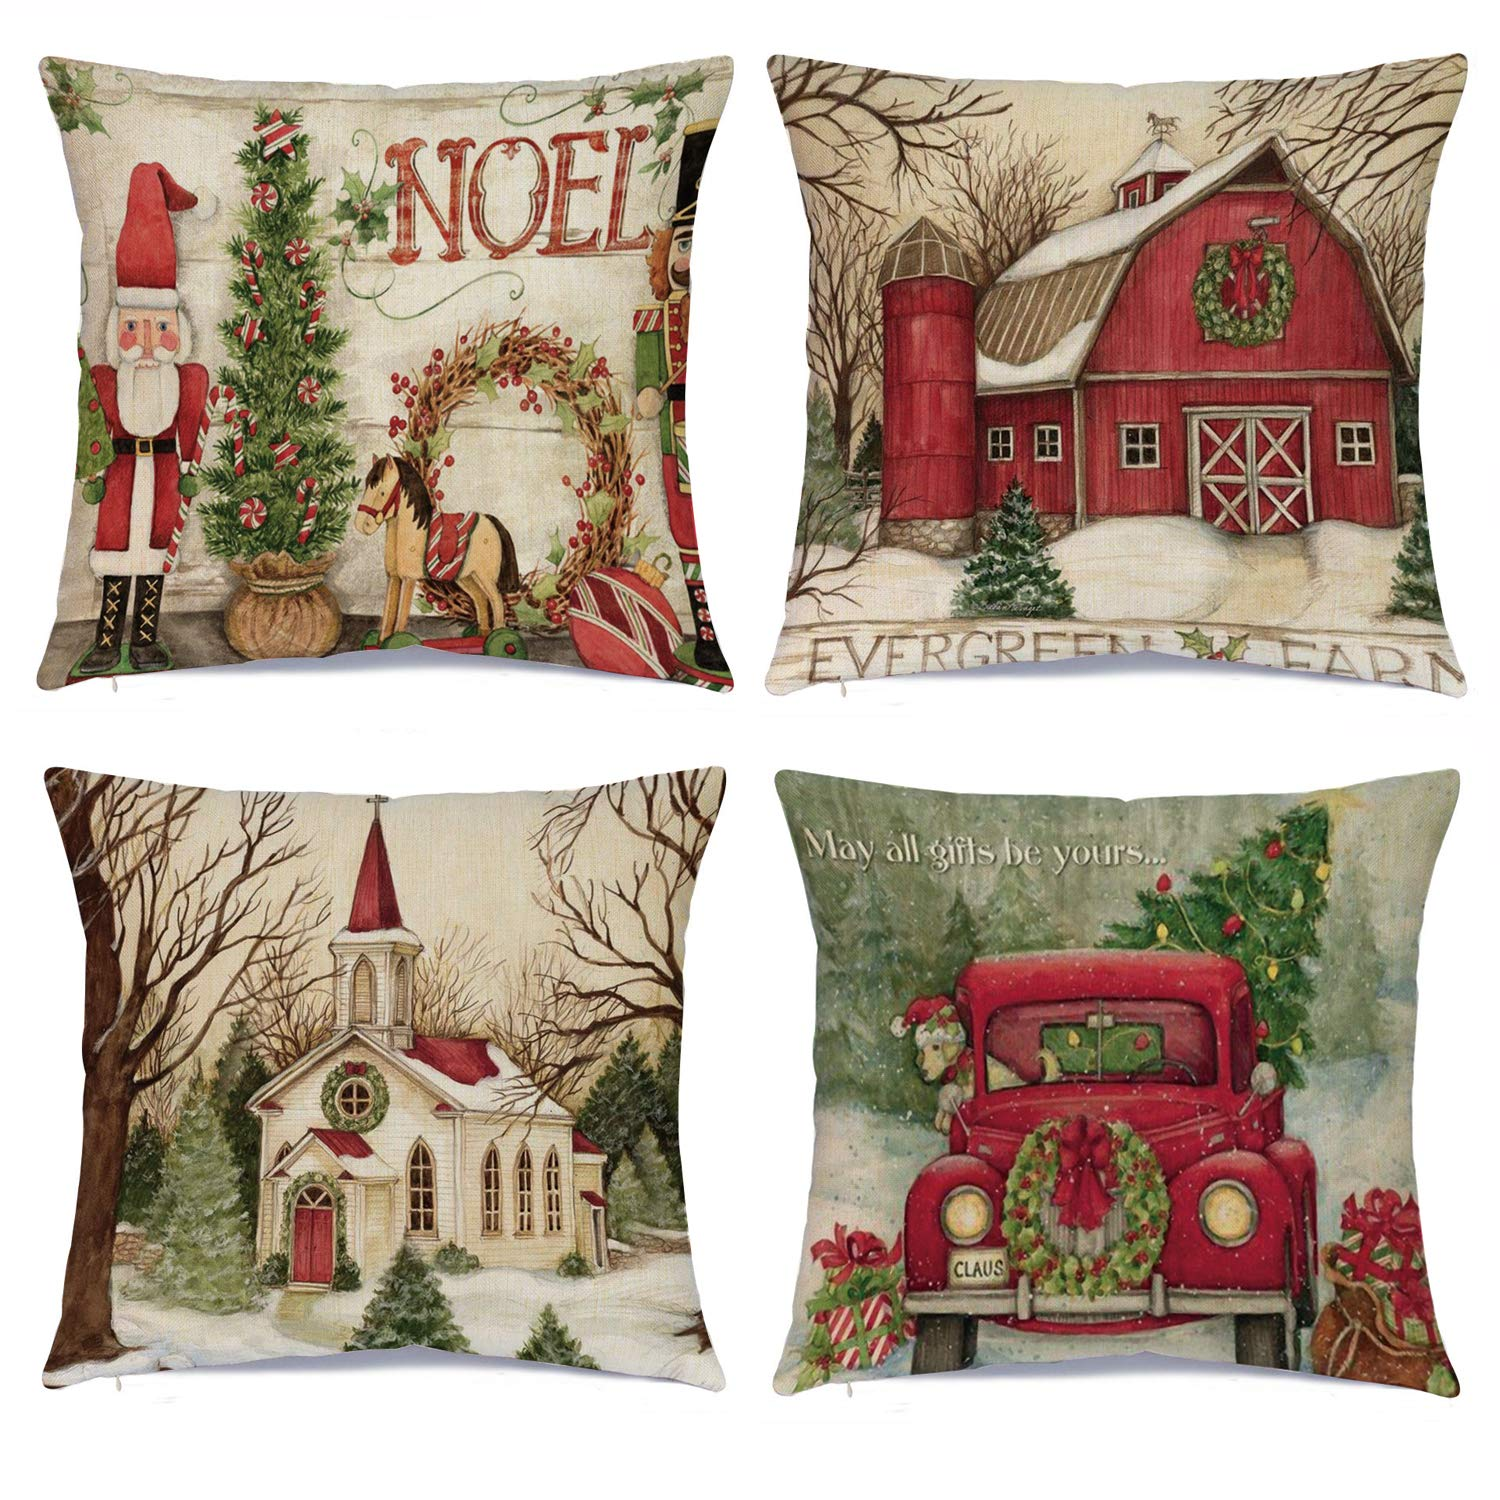 Hlonon Christmas Pillow Covers 18 x 18 Inches Set of 4 - Xmas Series Cushion Cover Case Pillow Custom Zippered Square Pillowcase